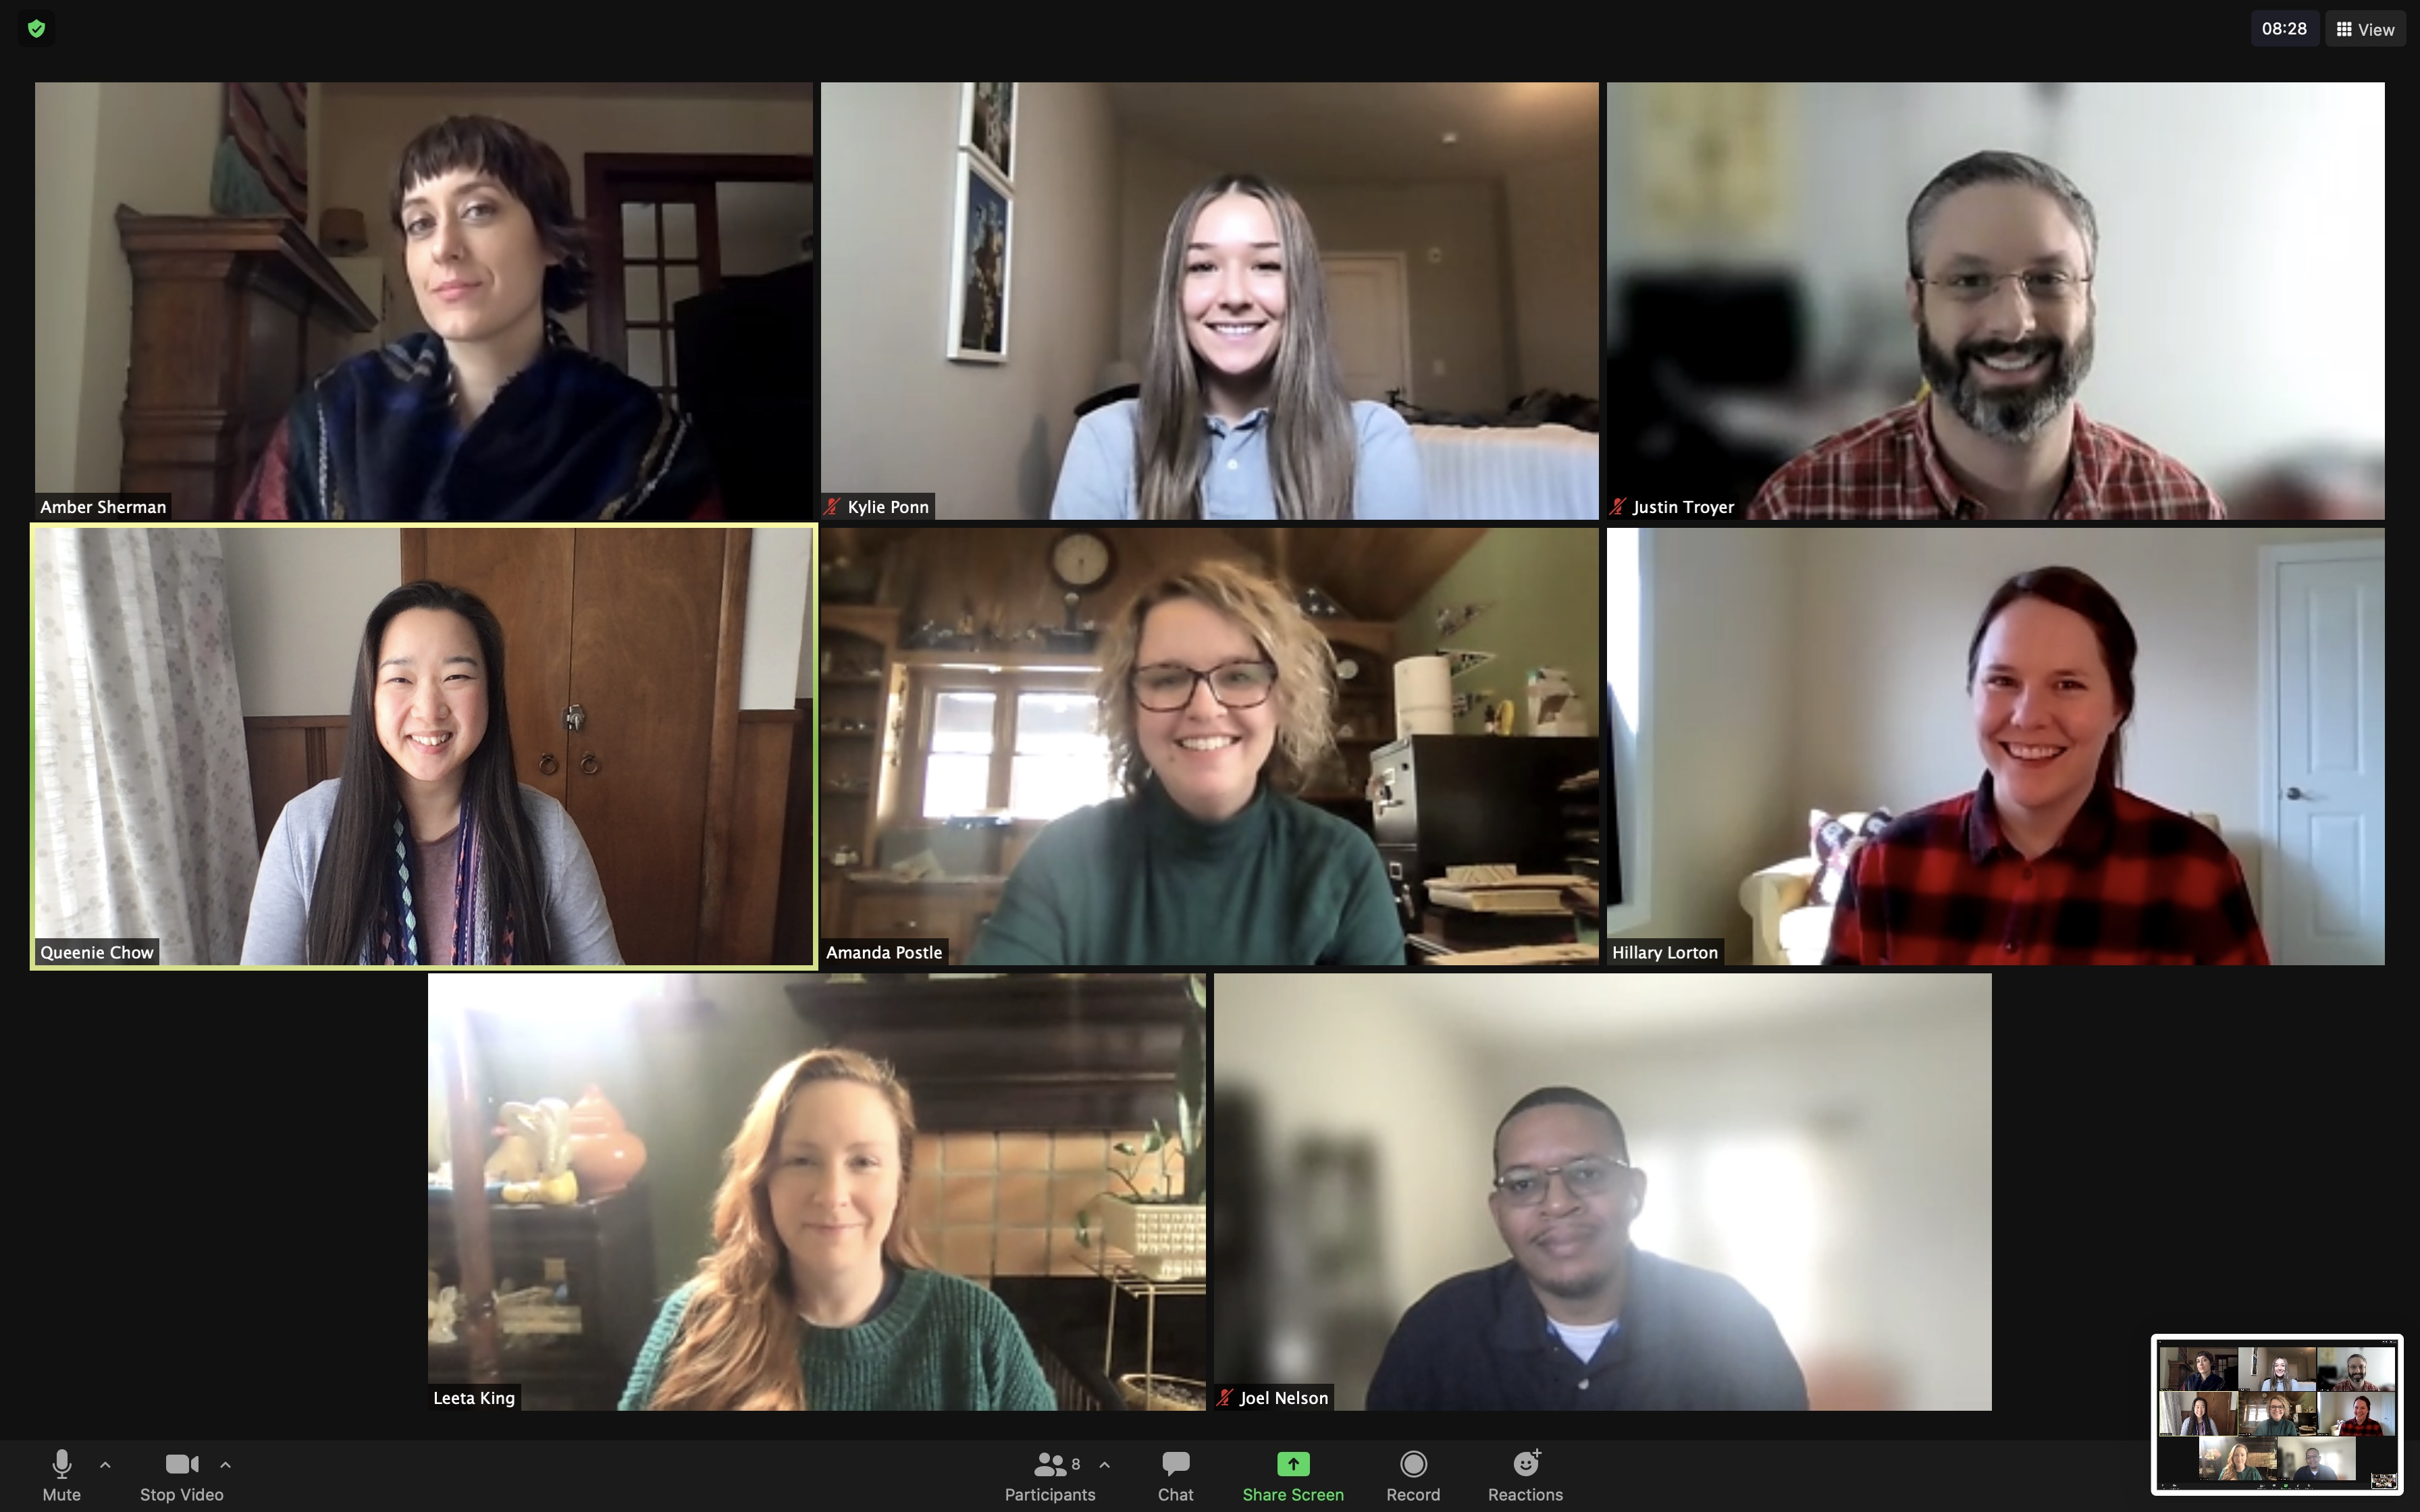 Zoom meeting screenshot with Innovate 2021 chairs smiling, on hover the chairs are using fun filters and making silly faces